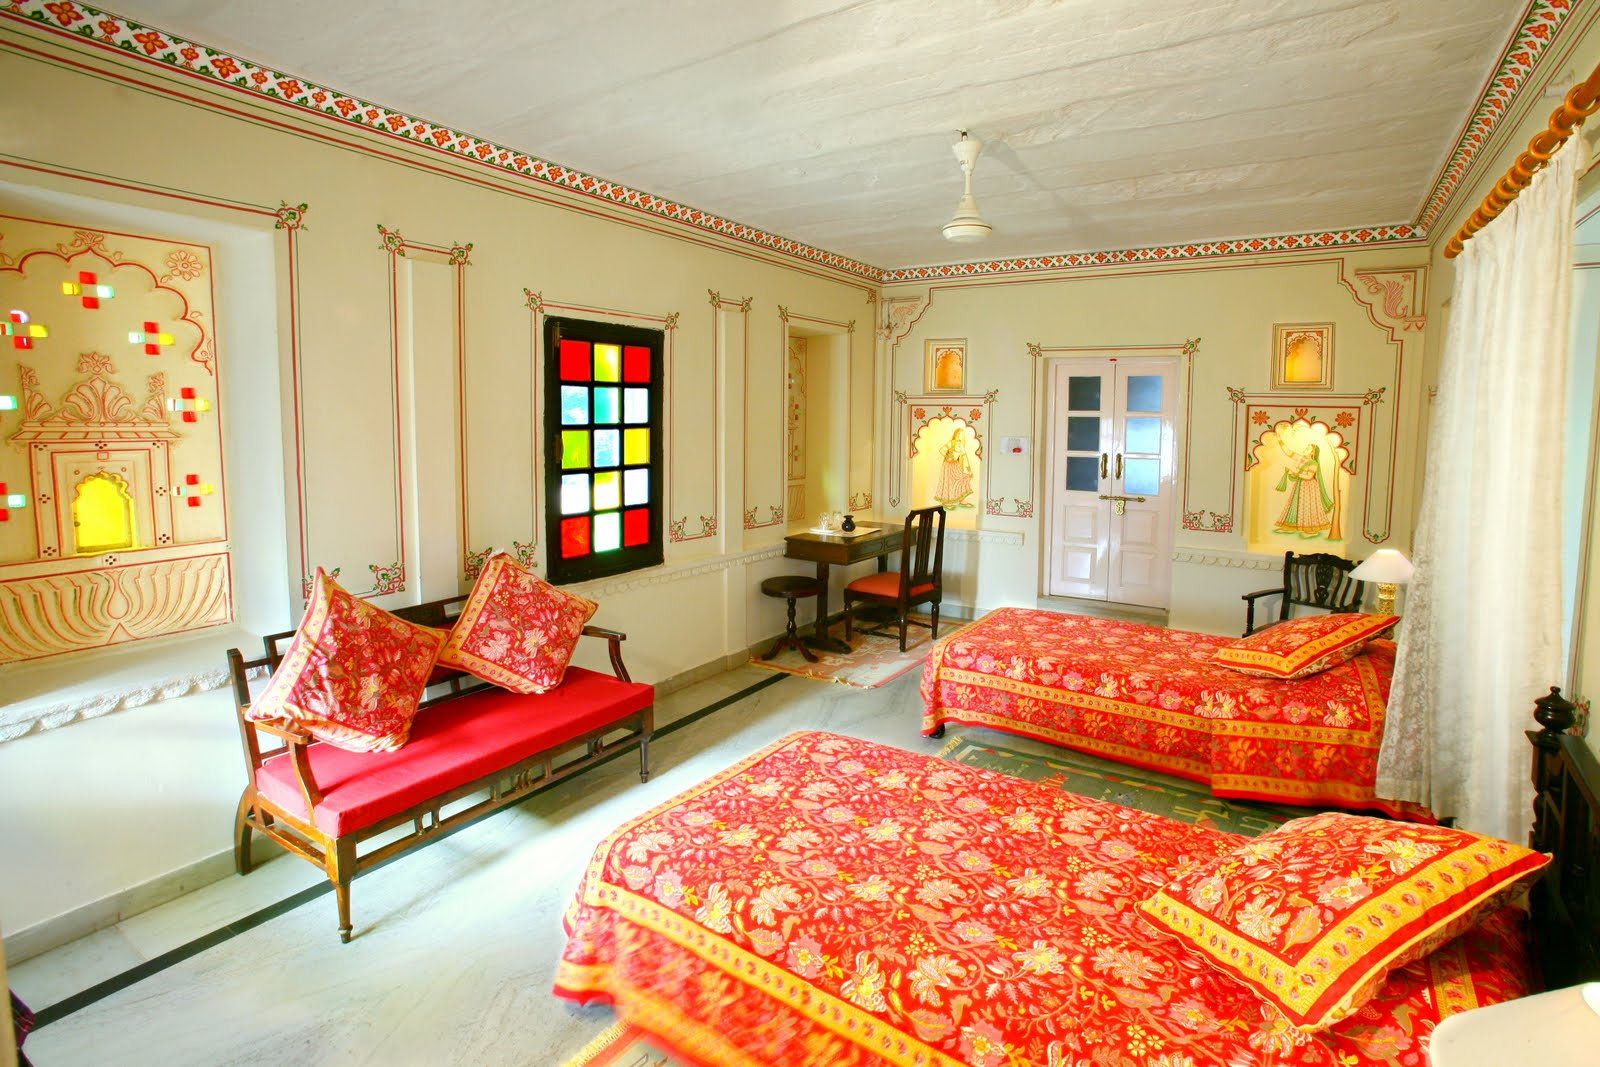 Indian Home Decoration Taking A Cue From Rajasthan Home Decor Ideas Happho